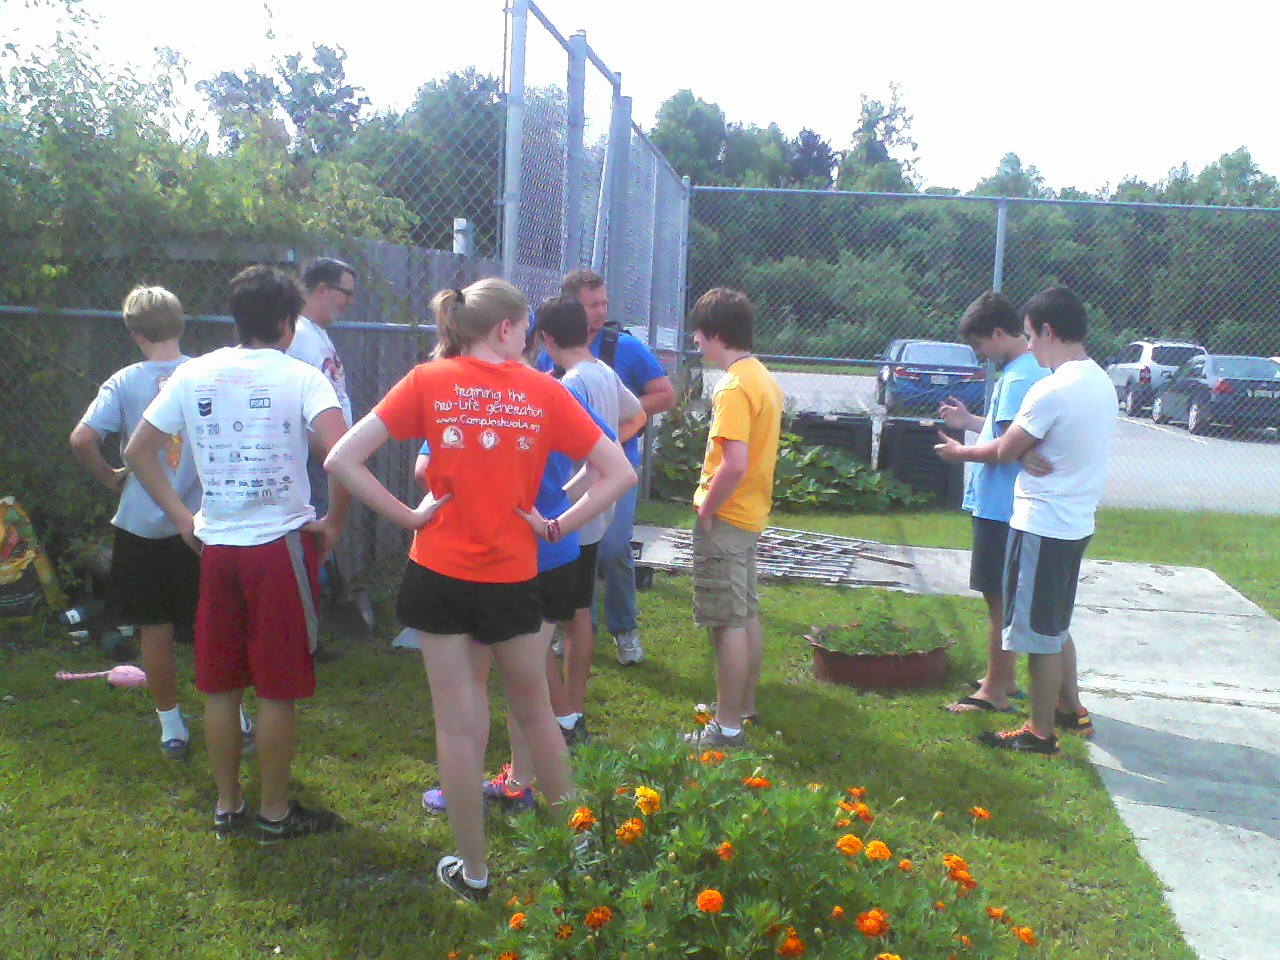 Mr. Willie huddles up the garden group.